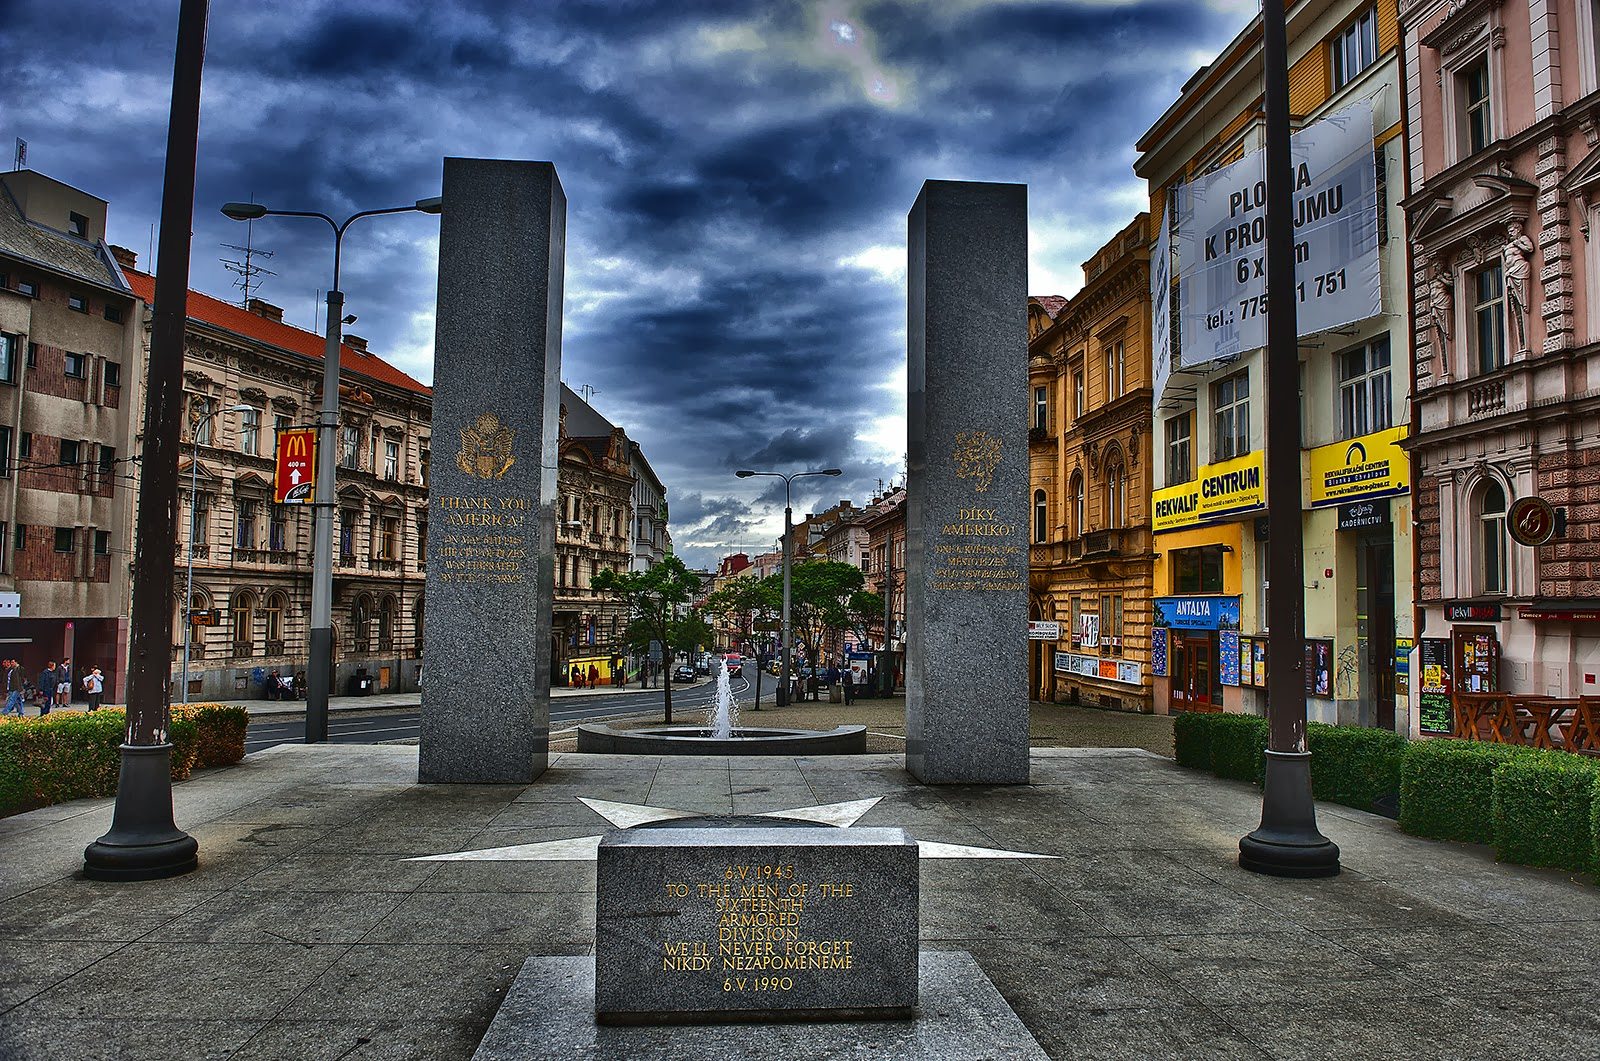 Plzen, Pilsen, Czech Republic, Plzen 16th Army, Plzen liberation monument